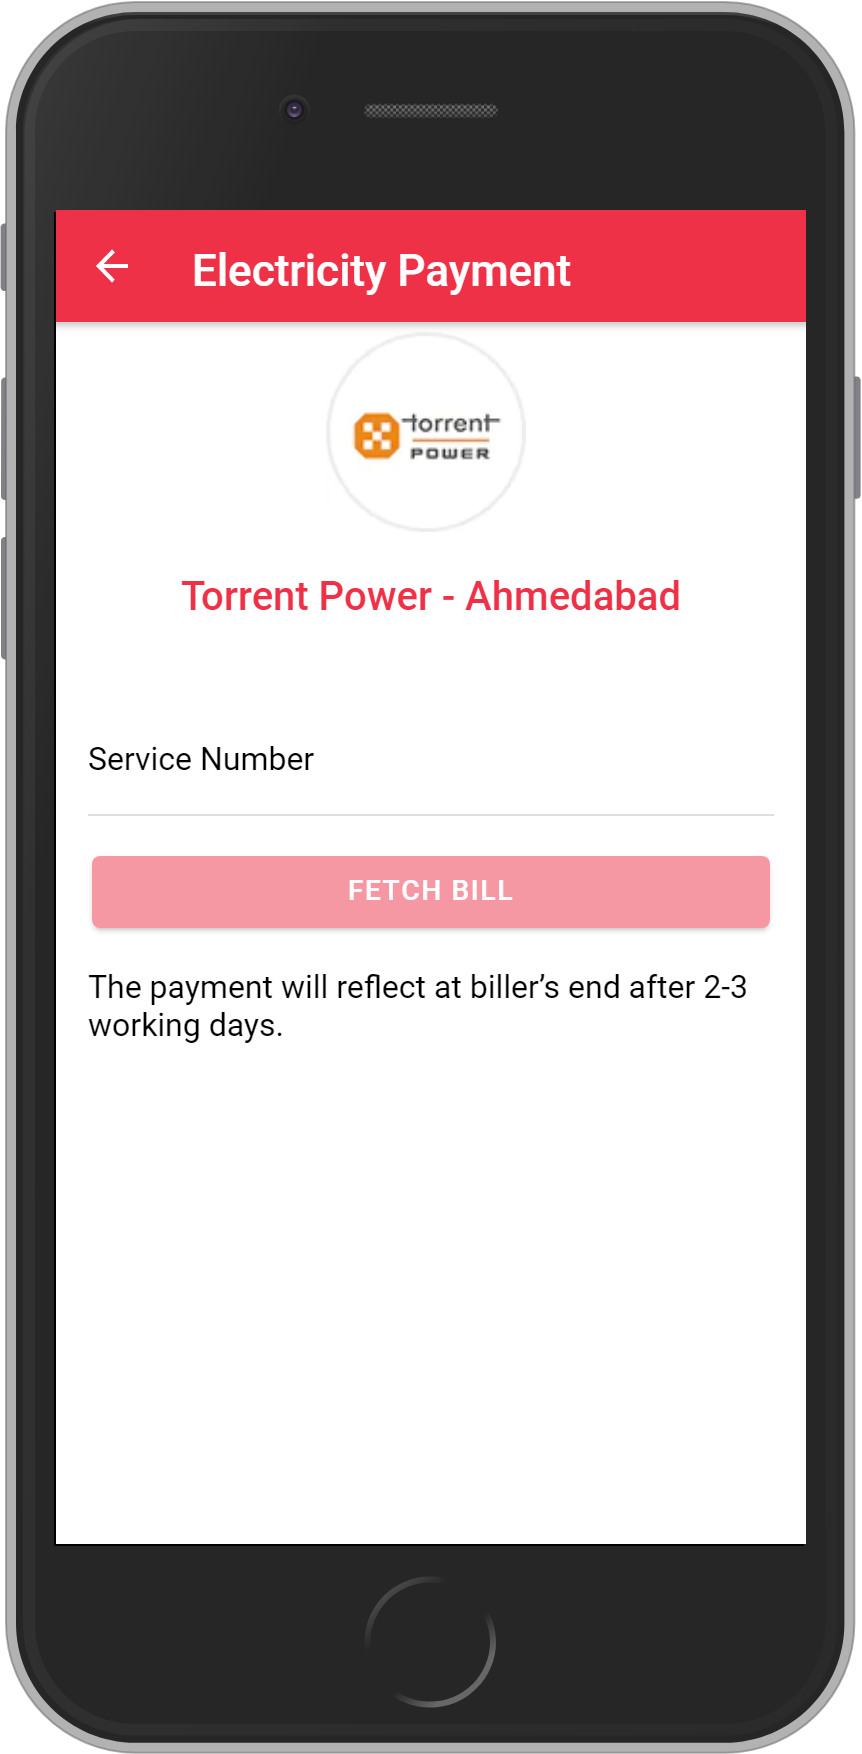 Get UNLIMITED <b>0.1%</b> CASHBACK on Torrent Power – Ahmedabad Bill Payment.